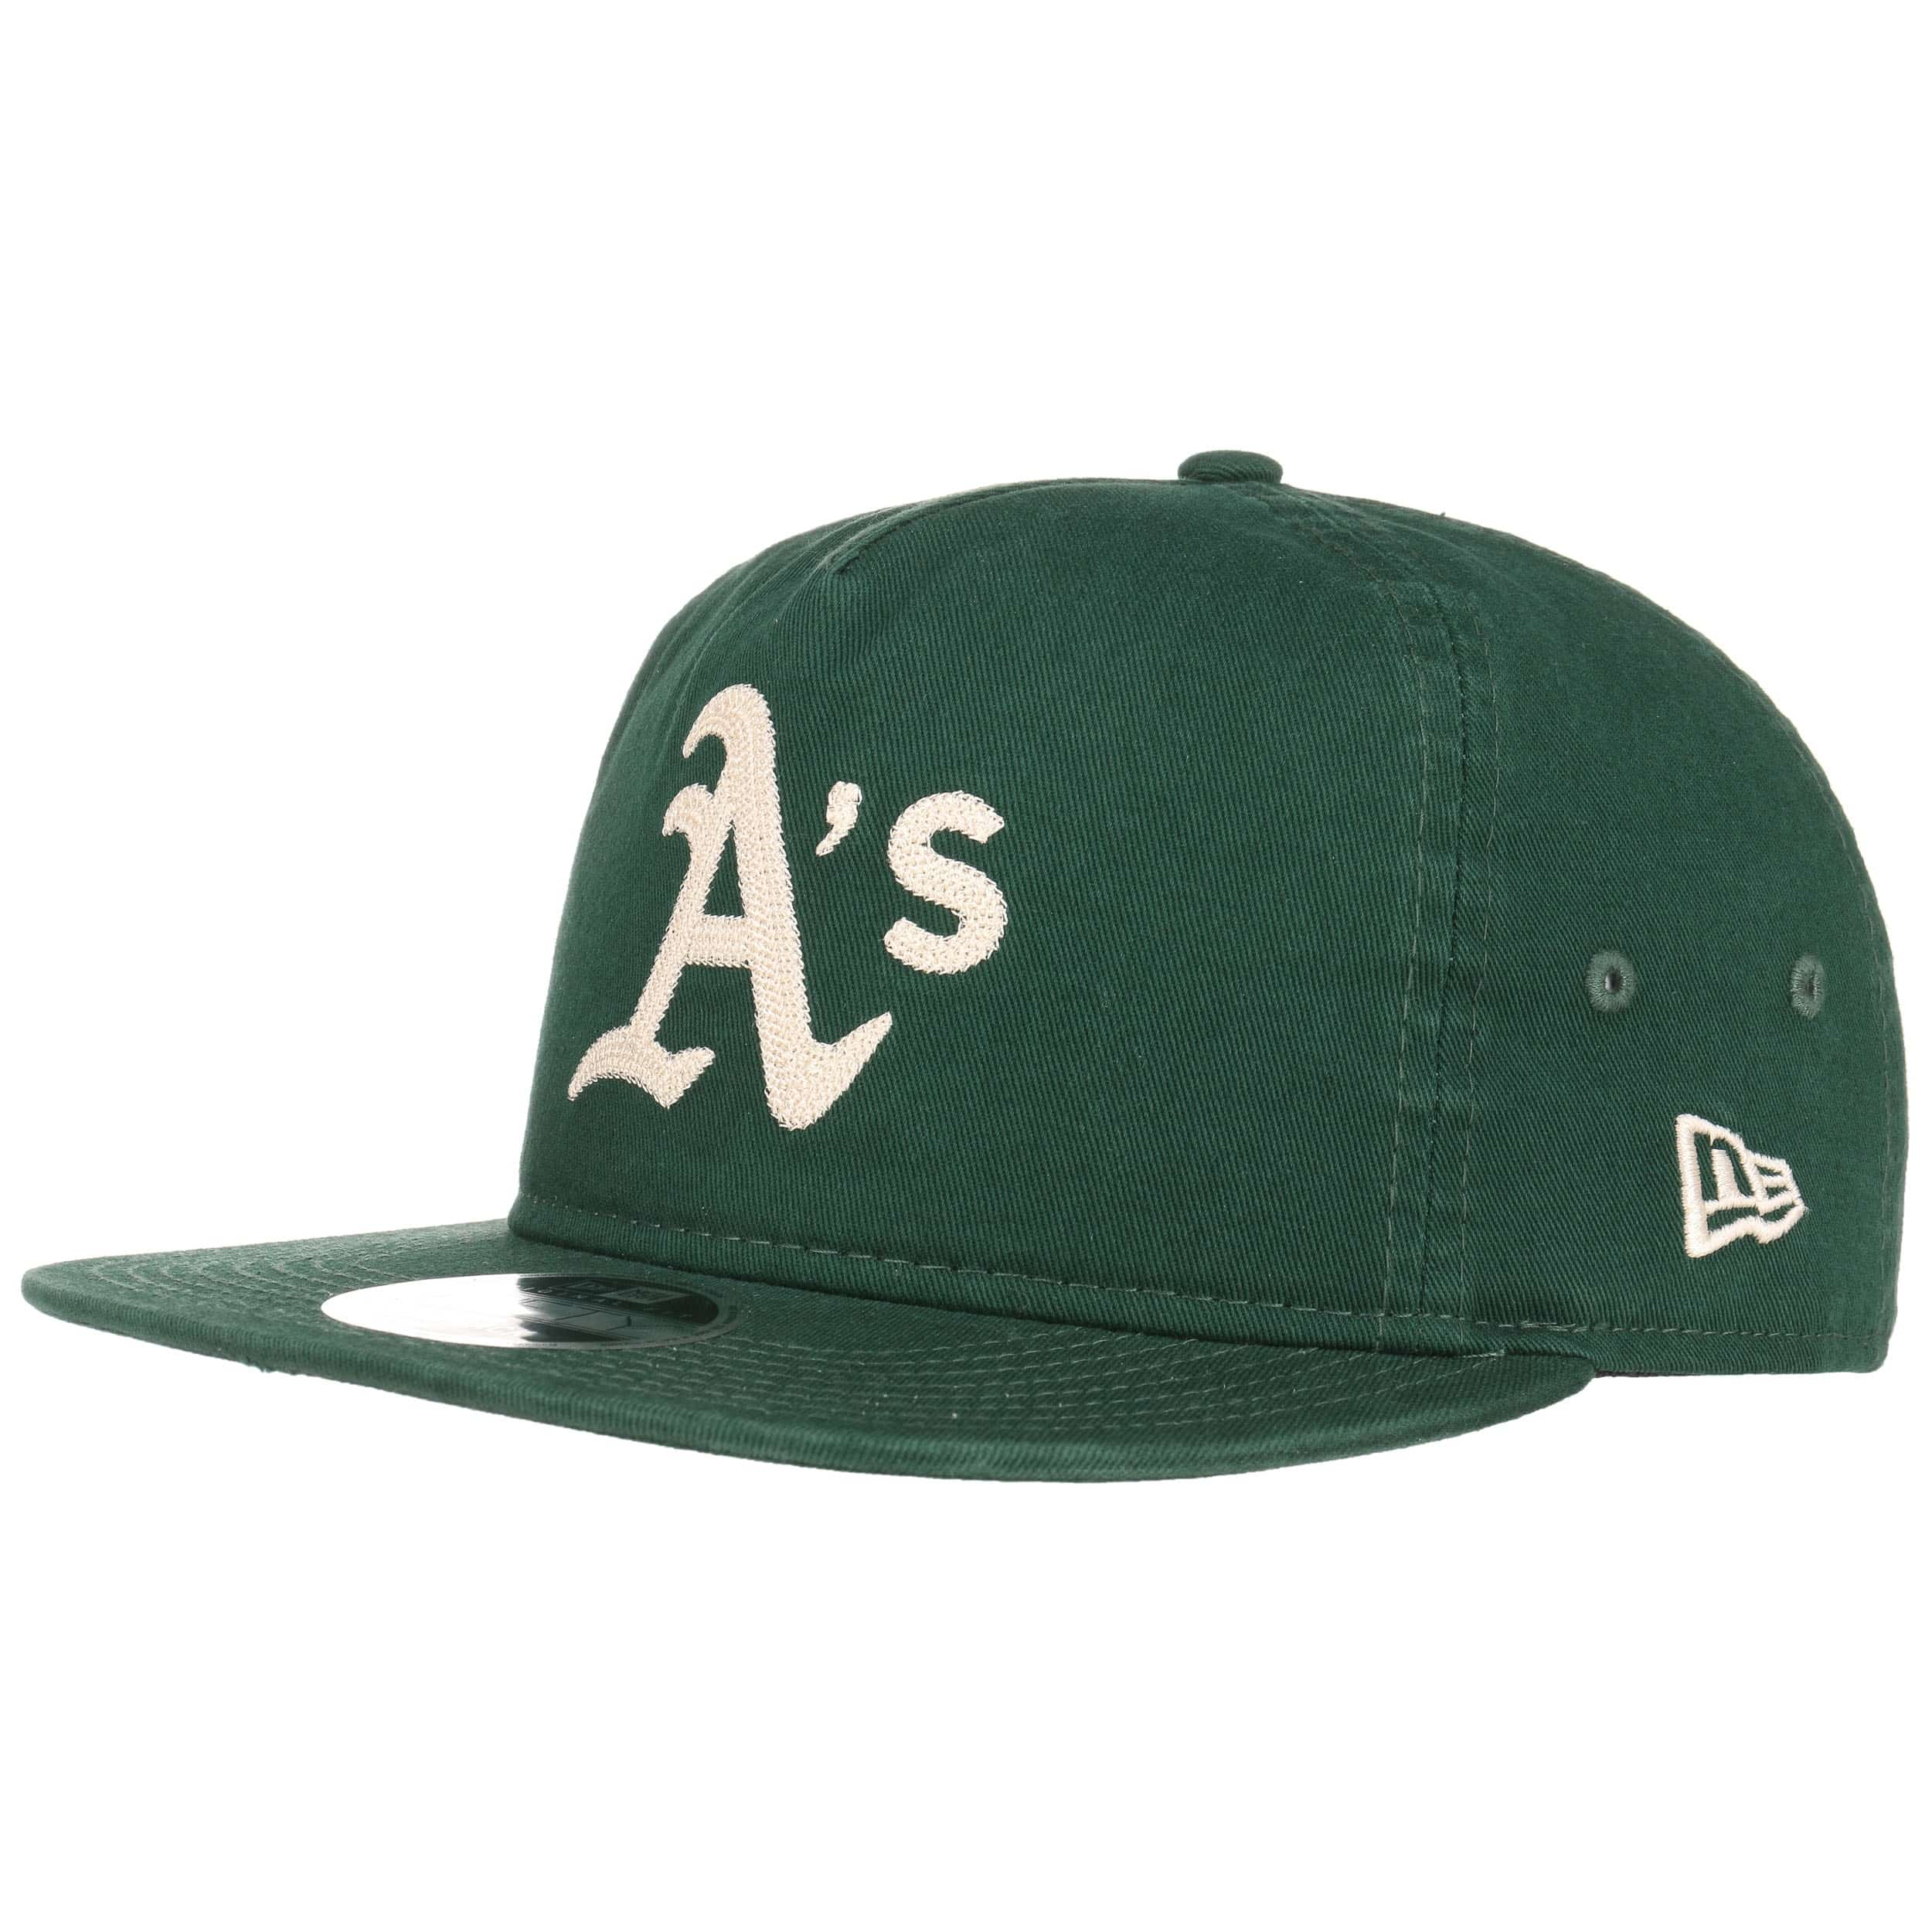 Gorra 9Fifty Chain Oakland by New Era - Gorras - sombreroshop.es 3a71ef27f96